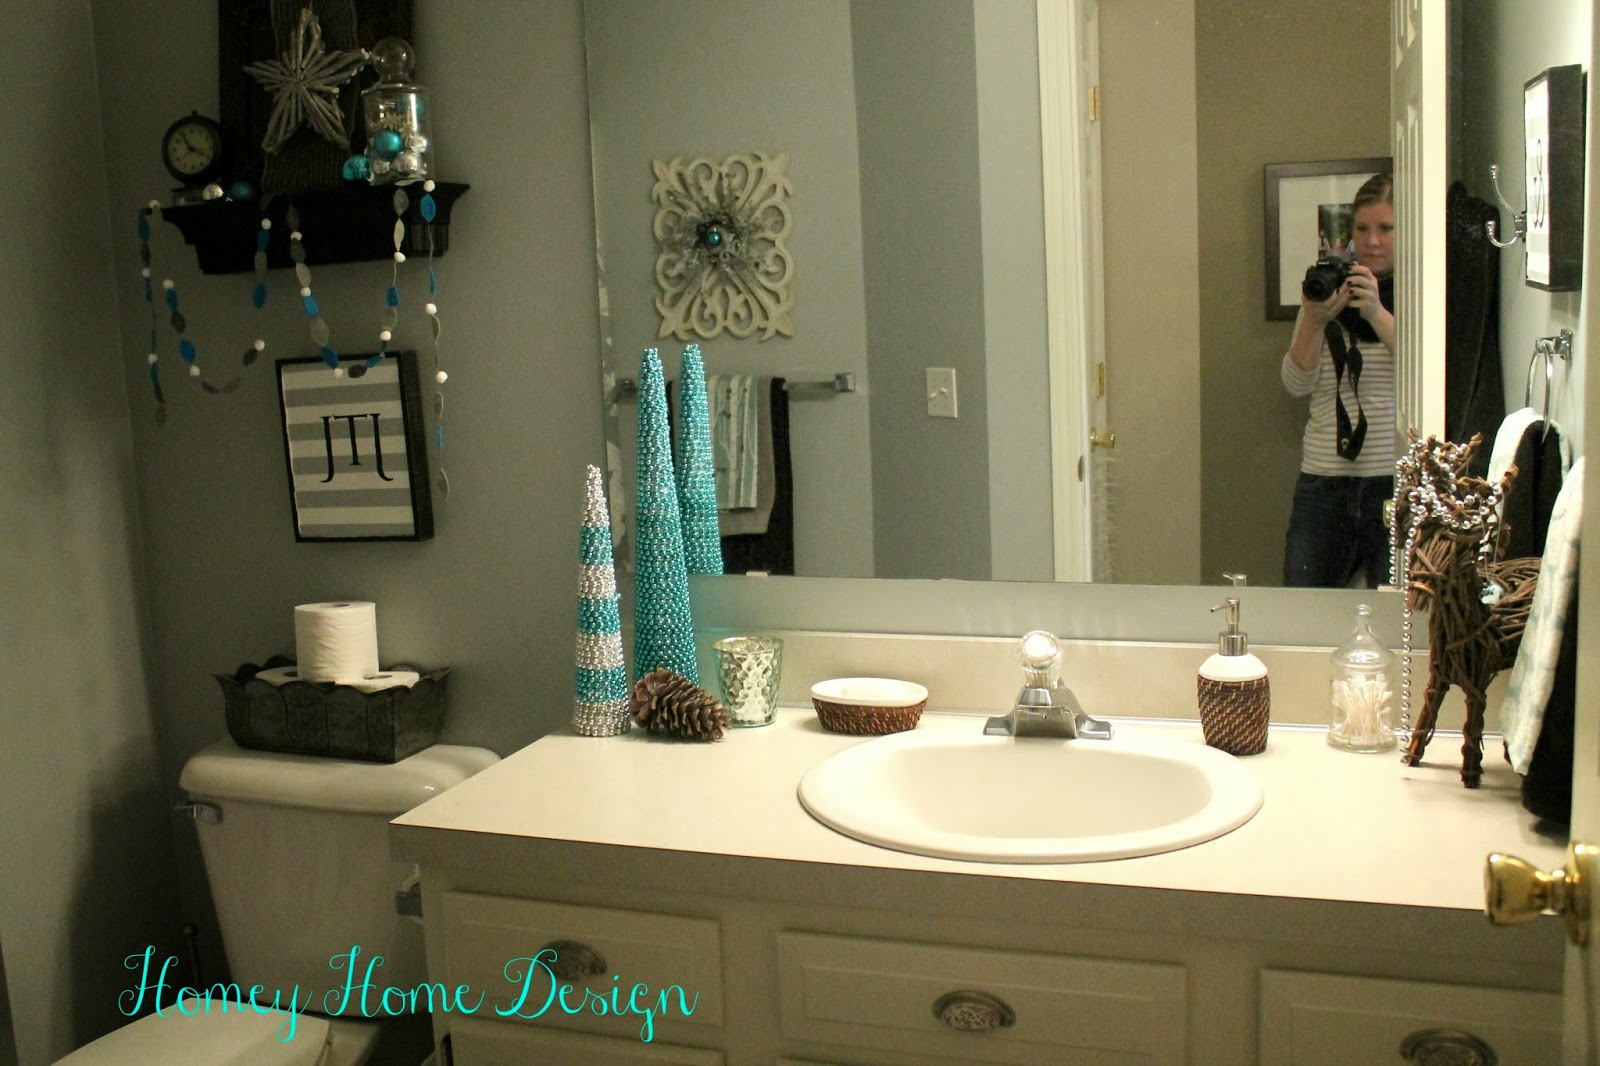 Homey home design bathroom christmas ideas for Bathroom decoration ideas